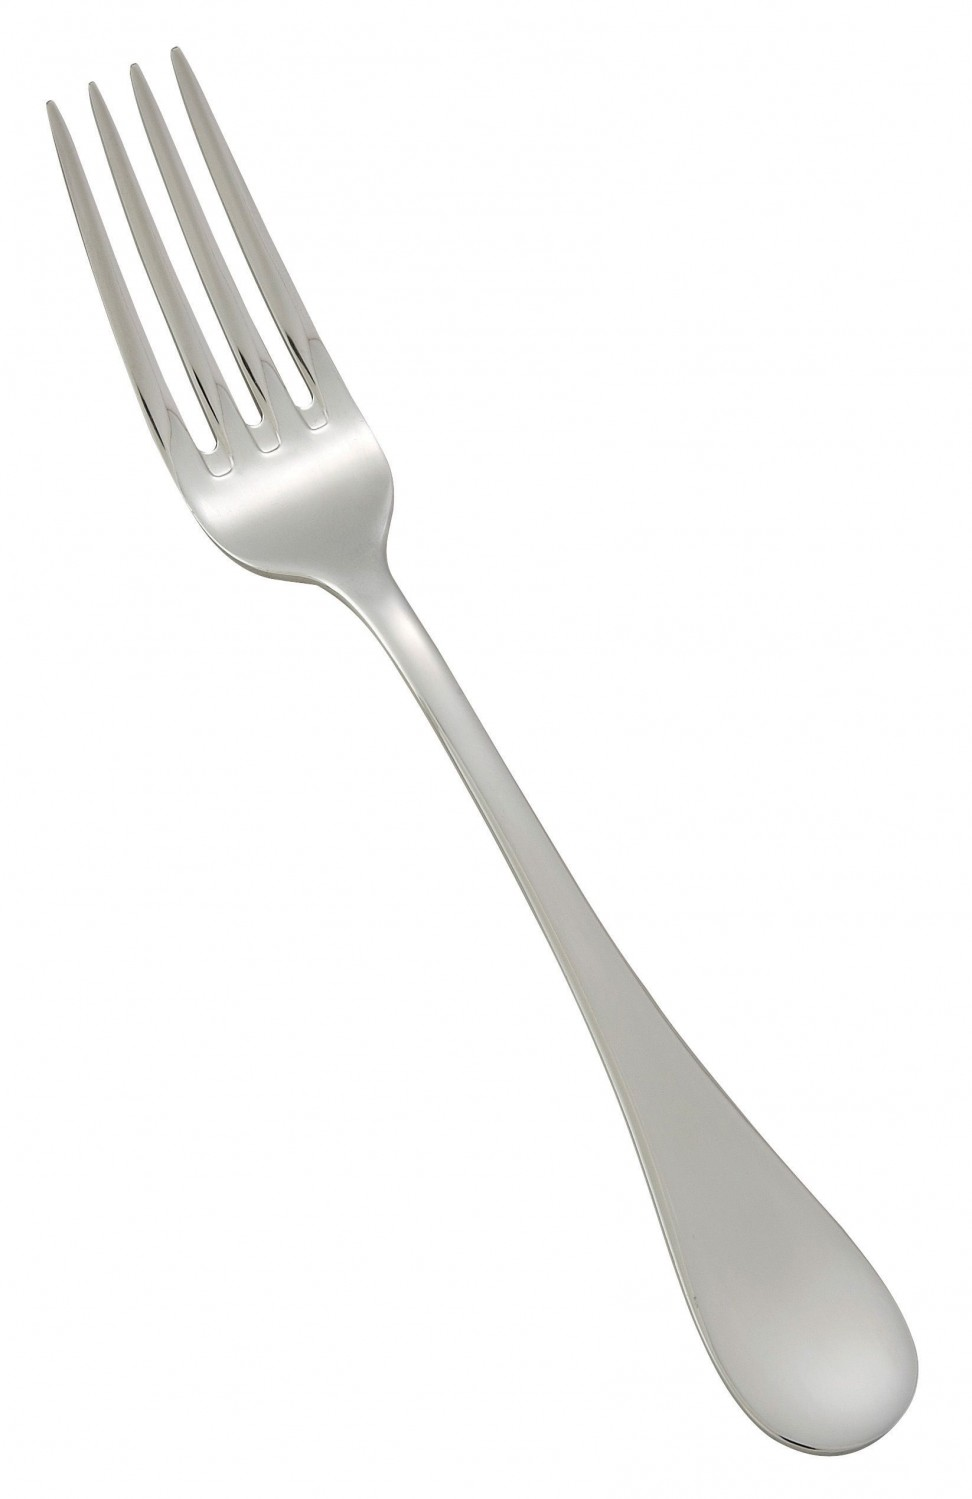 Winco 0037-06 Venice Extra Heavy Weight 18/8 Stainless Steel Salad Fork